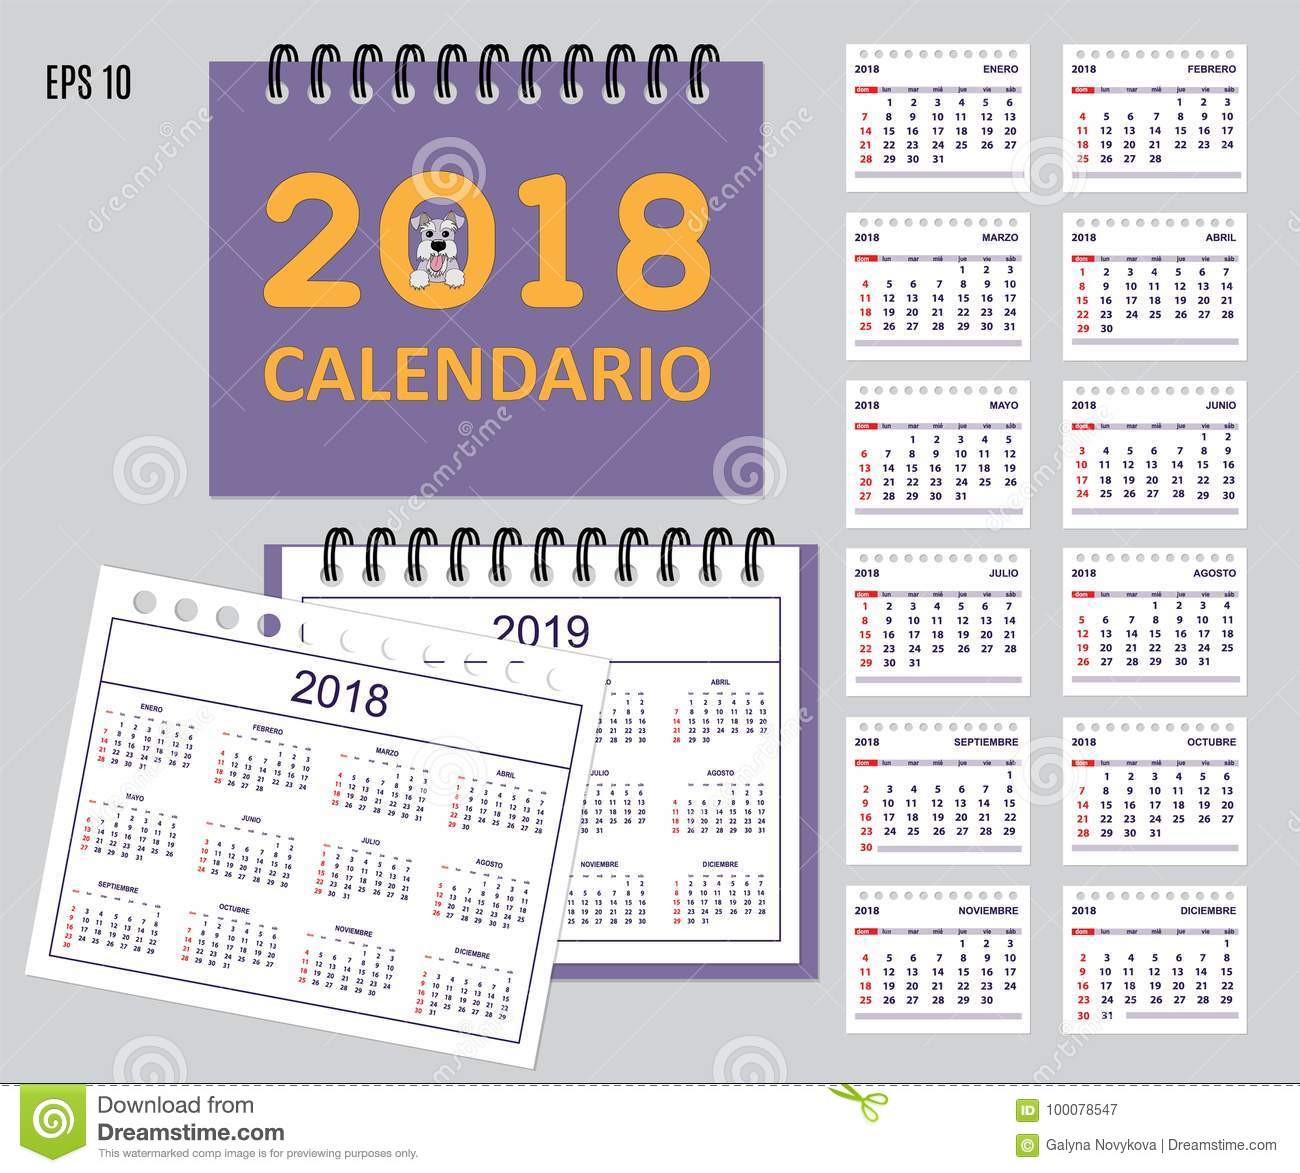 Cute Daily Calendar and To Do List Template Clipart Image